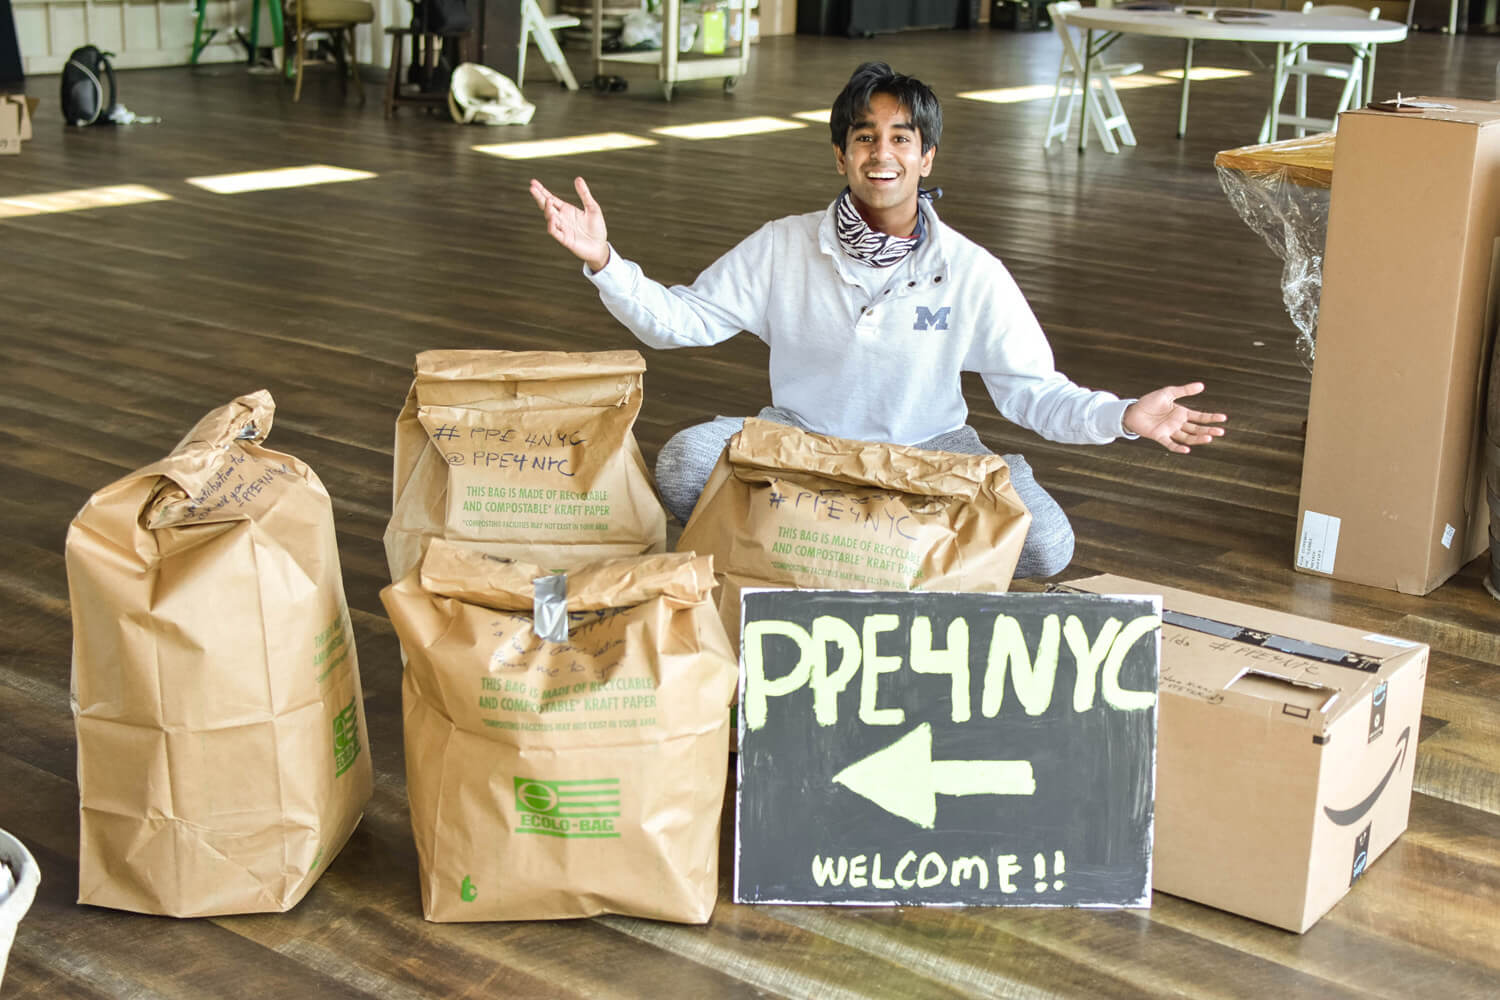 Our founder and CEO Krishna with bags of PPE